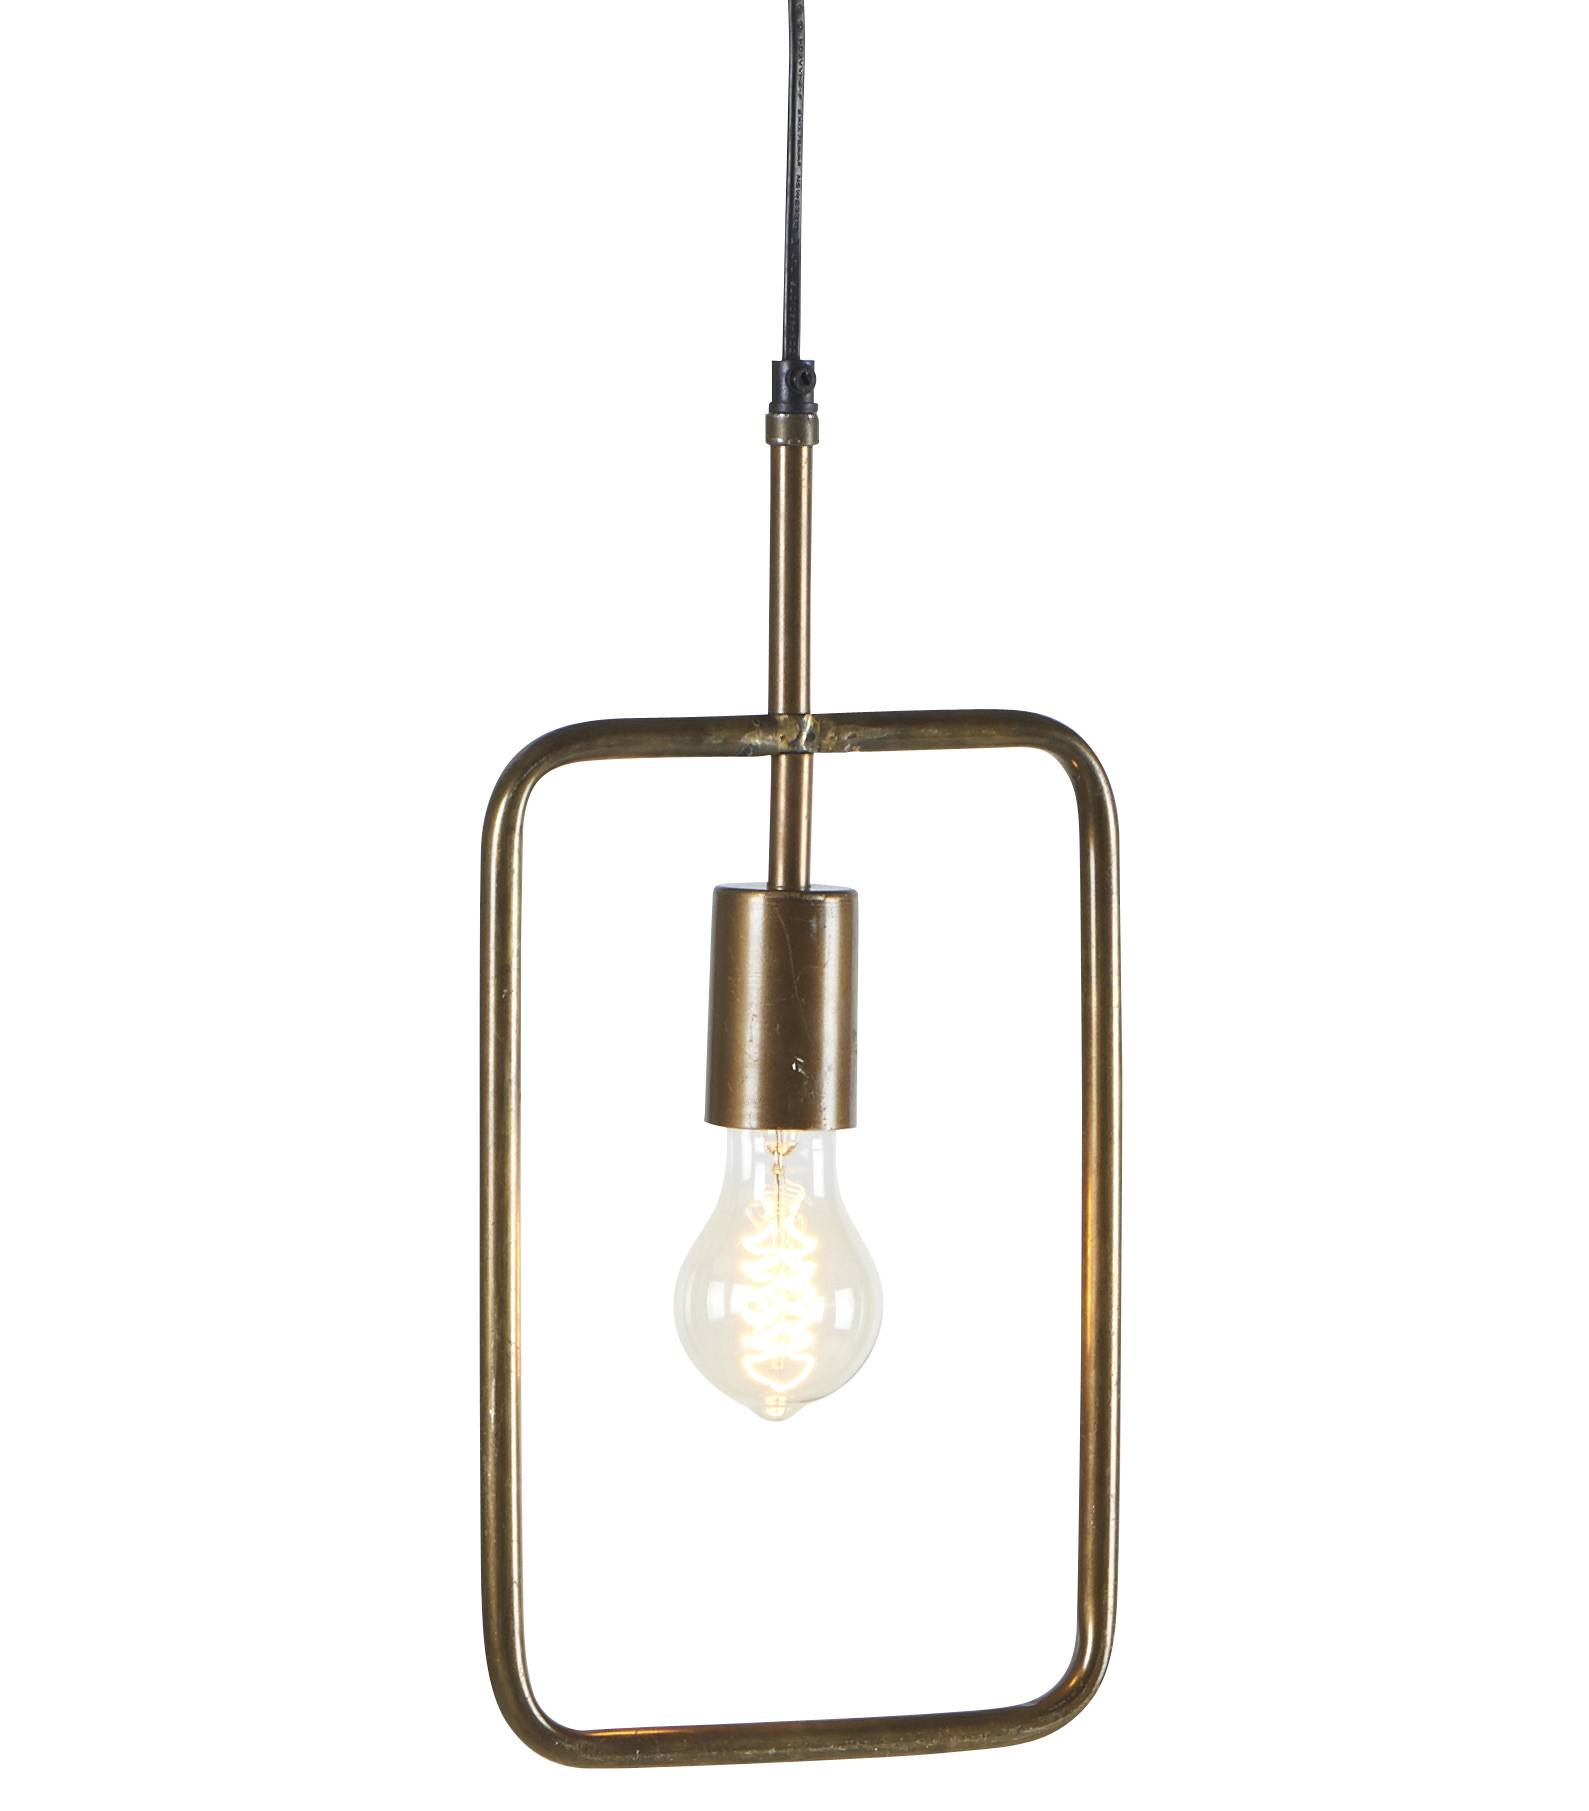 Suspension Ampoule Cuivre Suspension Ampoule Cuivre With Suspension